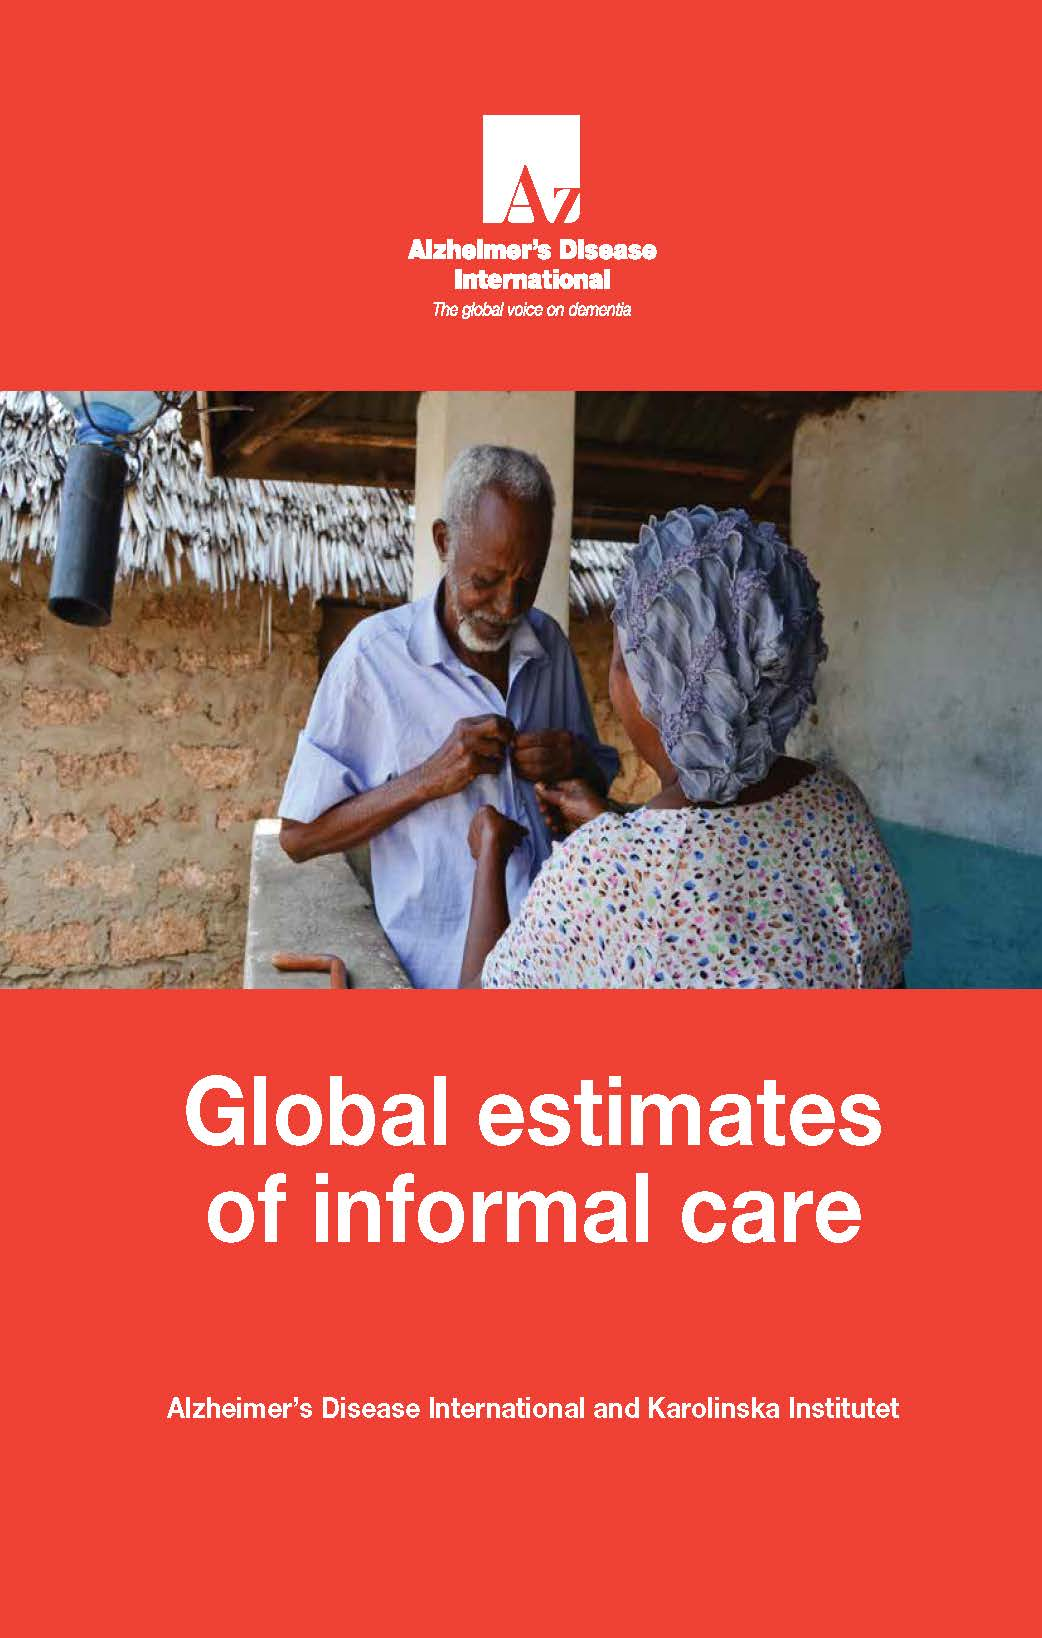 Global estimates of informal care